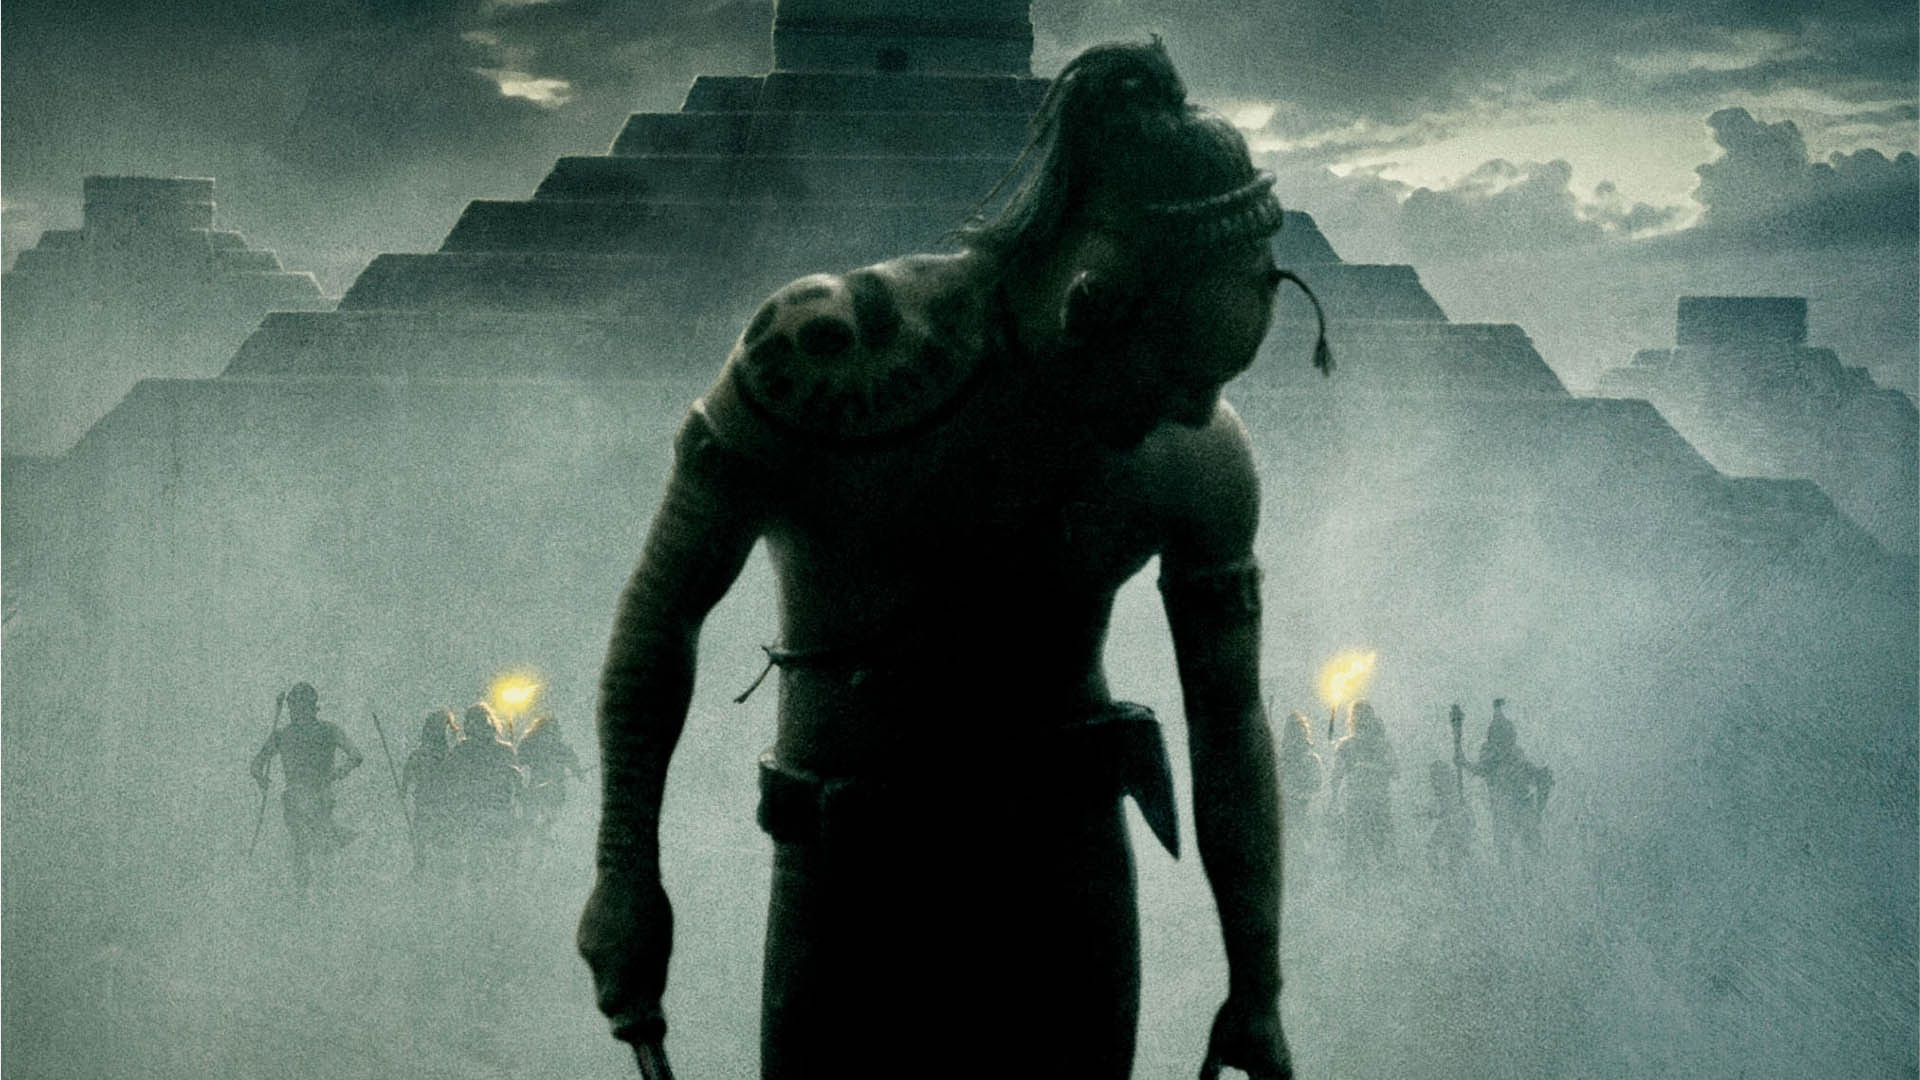 Download Wallpaper 1920x1080 Apocalypto, Movie, Man Full HD 1080p